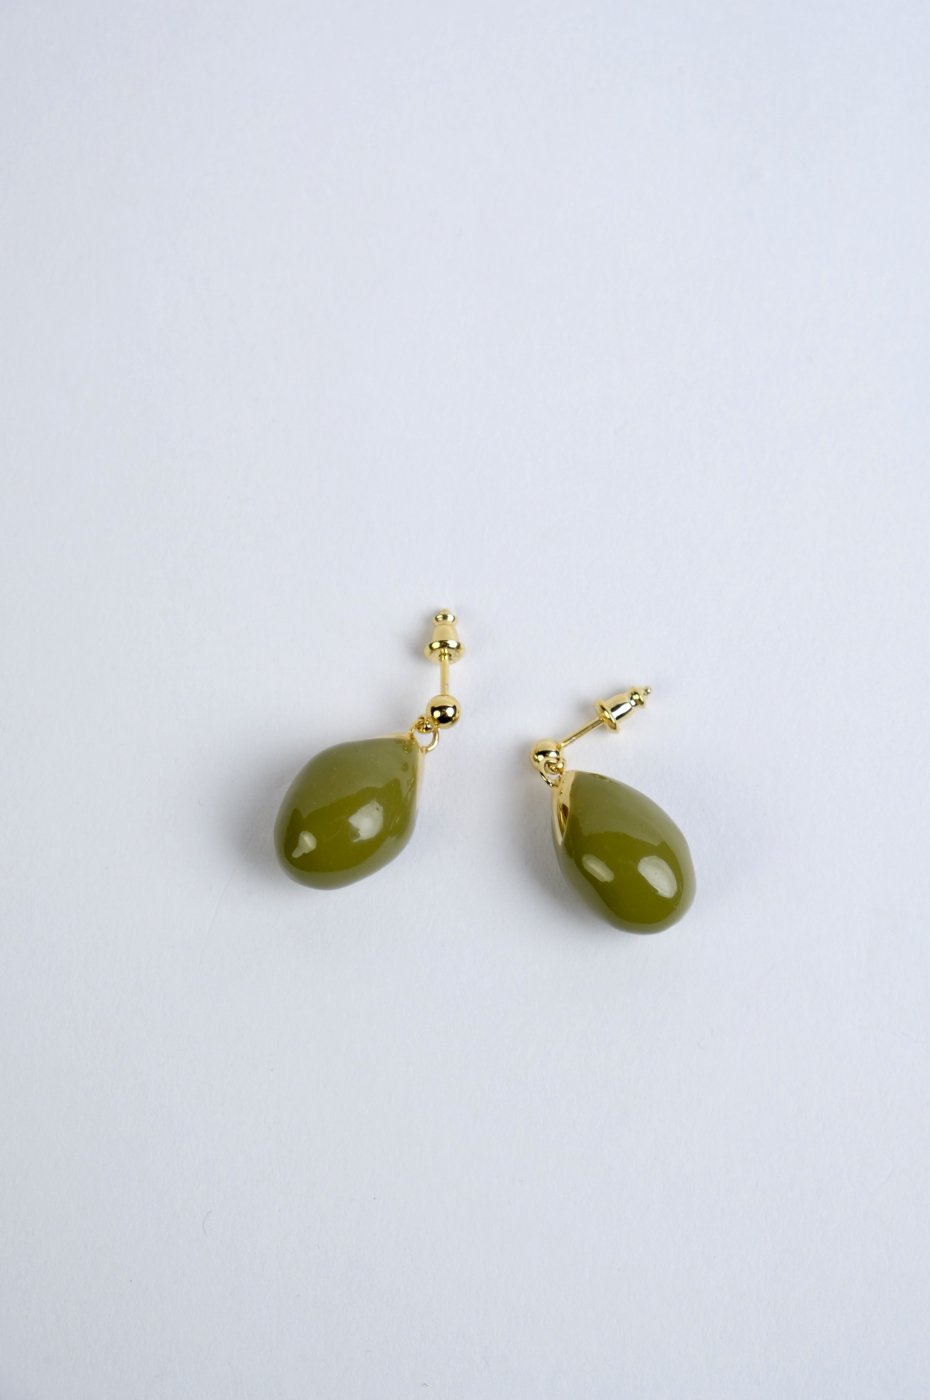 <img class='new_mark_img1' src='https://img.shop-pro.jp/img/new/icons5.gif' style='border:none;display:inline;margin:0px;padding:0px;width:auto;' />R.ALAGANララガン-OLIVE EARRINGS-OLIVE/GOLD